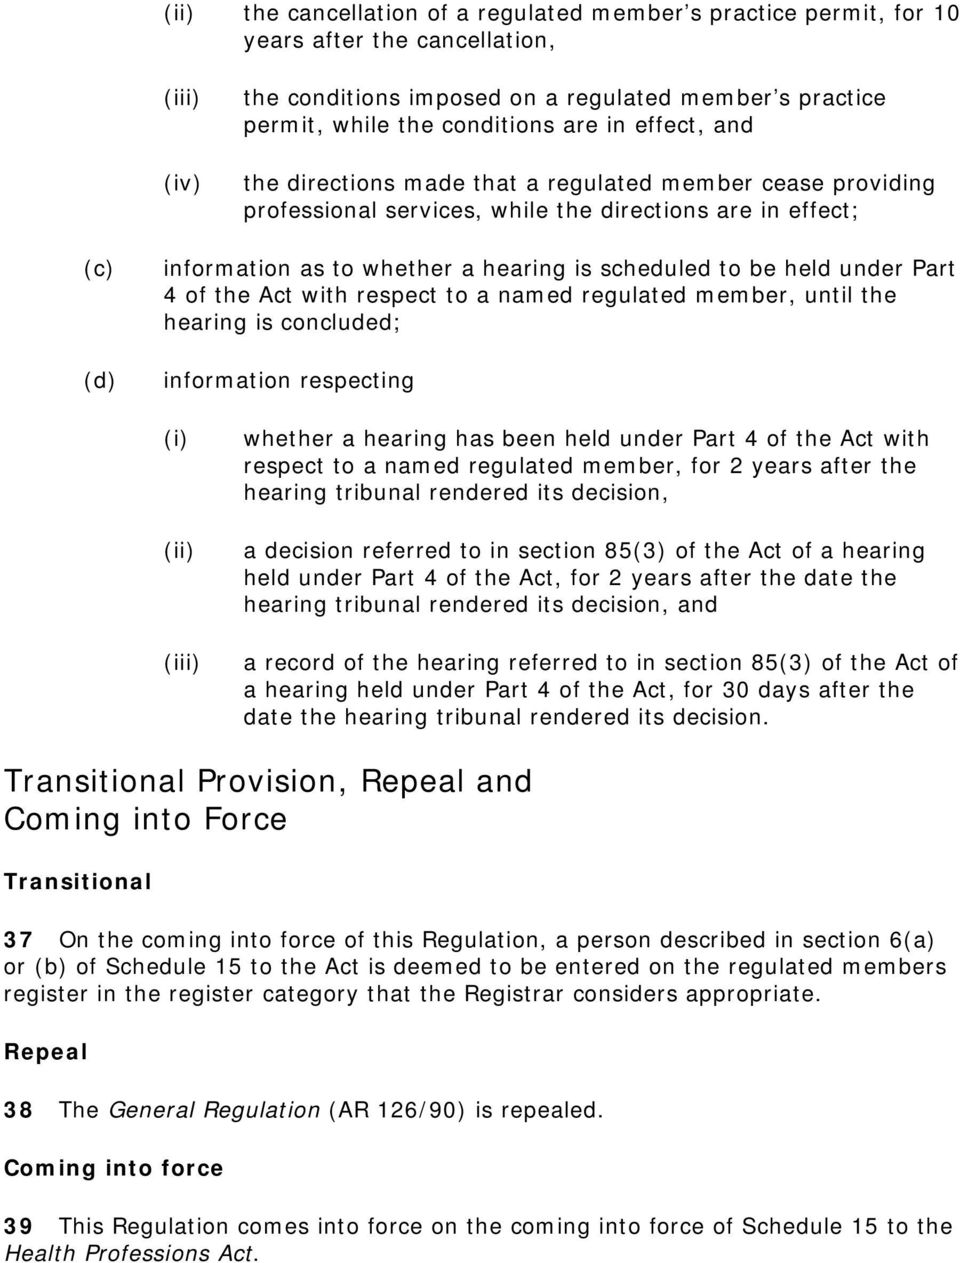 Part 4 of the Act with respect to a named regulated member, until the hearing is concluded; information respecting (ii) (iii) whether a hearing has been held under Part 4 of the Act with respect to a